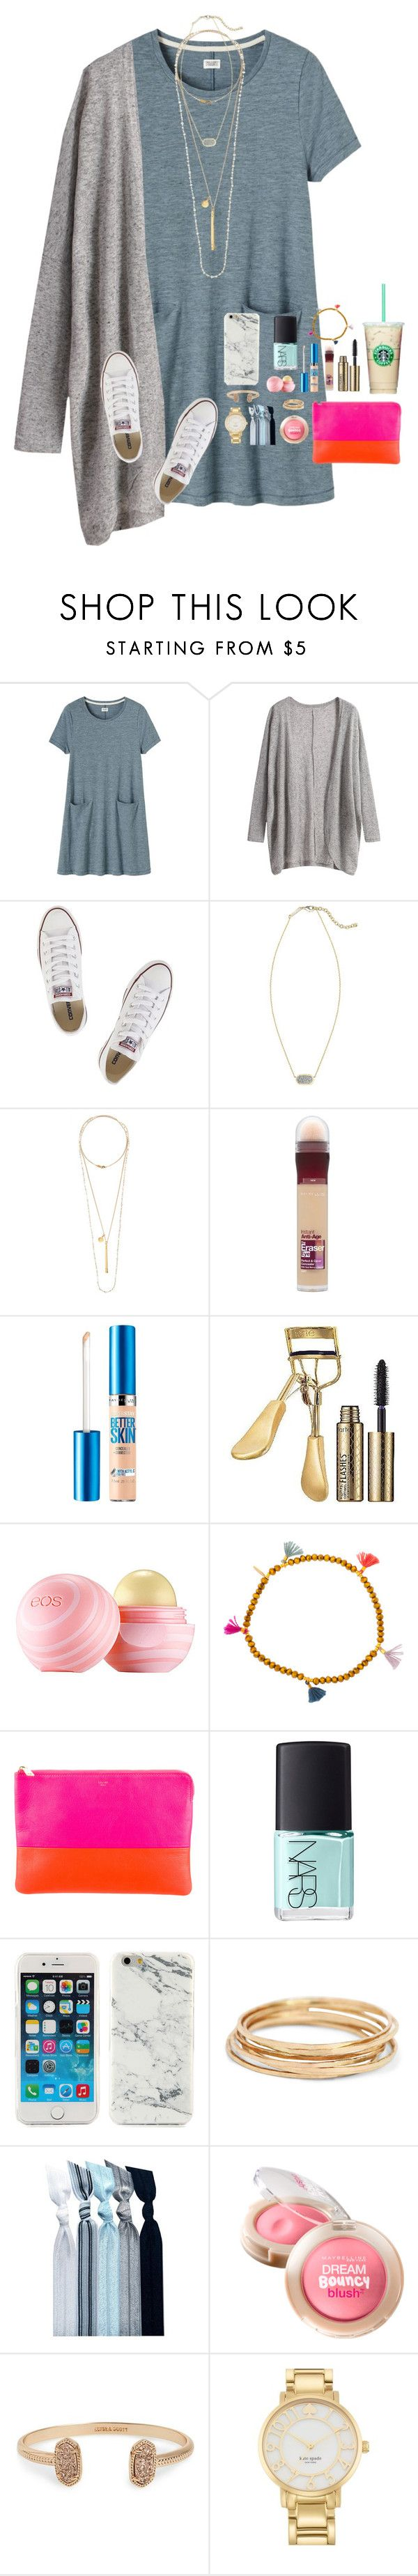 """""""Happiness is a state of mind :) :)"""" by graciegerhart7 ❤ liked on Polyvore featuring Toast, Converse, Kendra Scott, Chan Luu, Maybelline, tarte, Eos, Shashi, CÉLINE and NARS Cosmetics"""